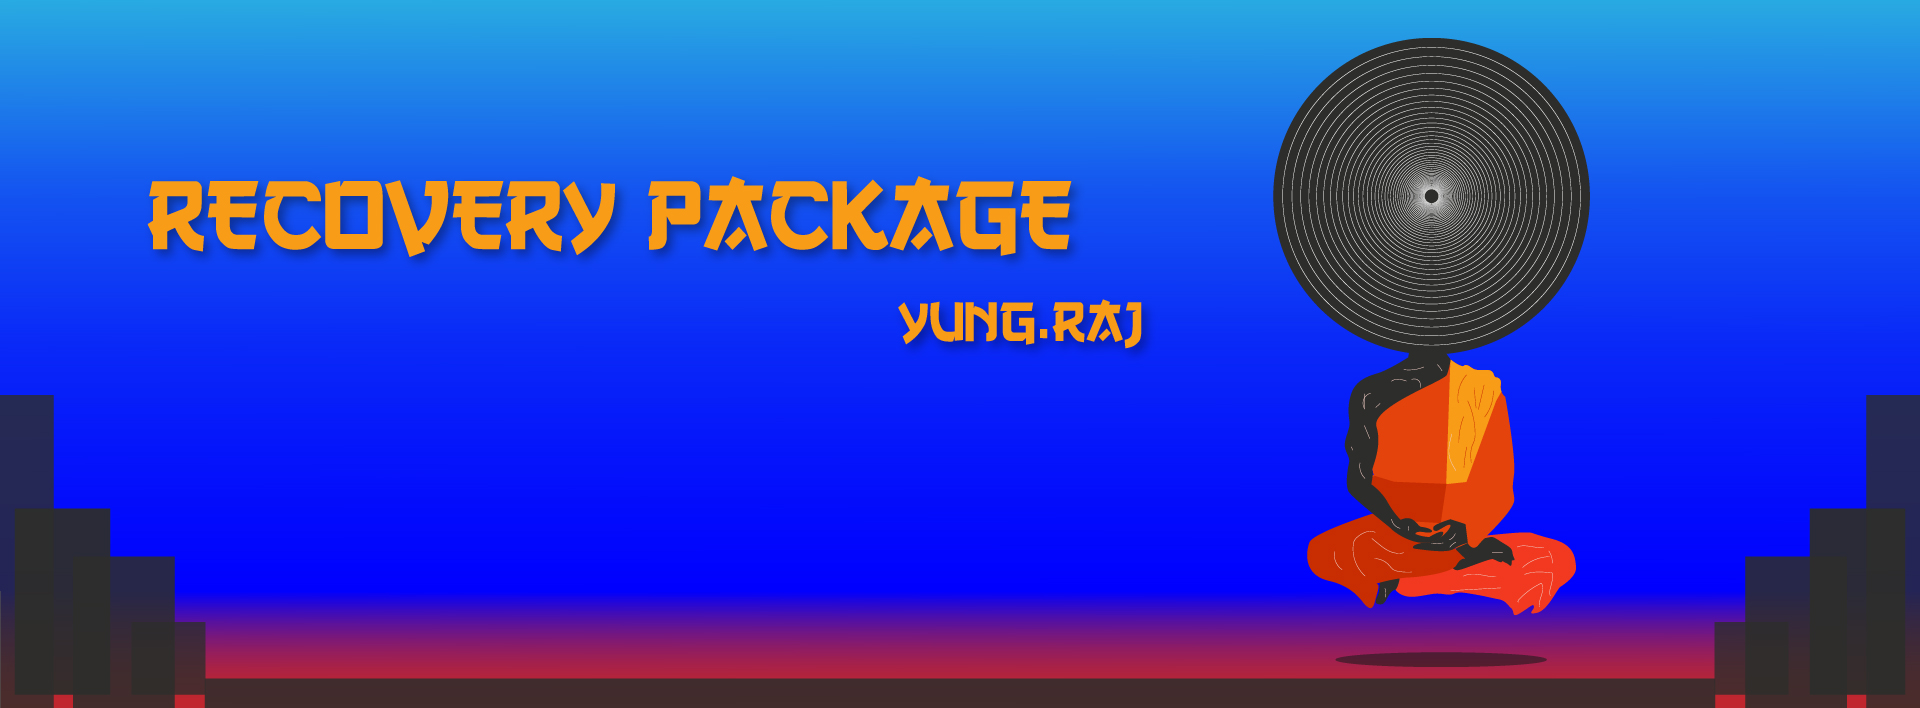 Yung Raj - Recovery Package EP FB Cover.jpg